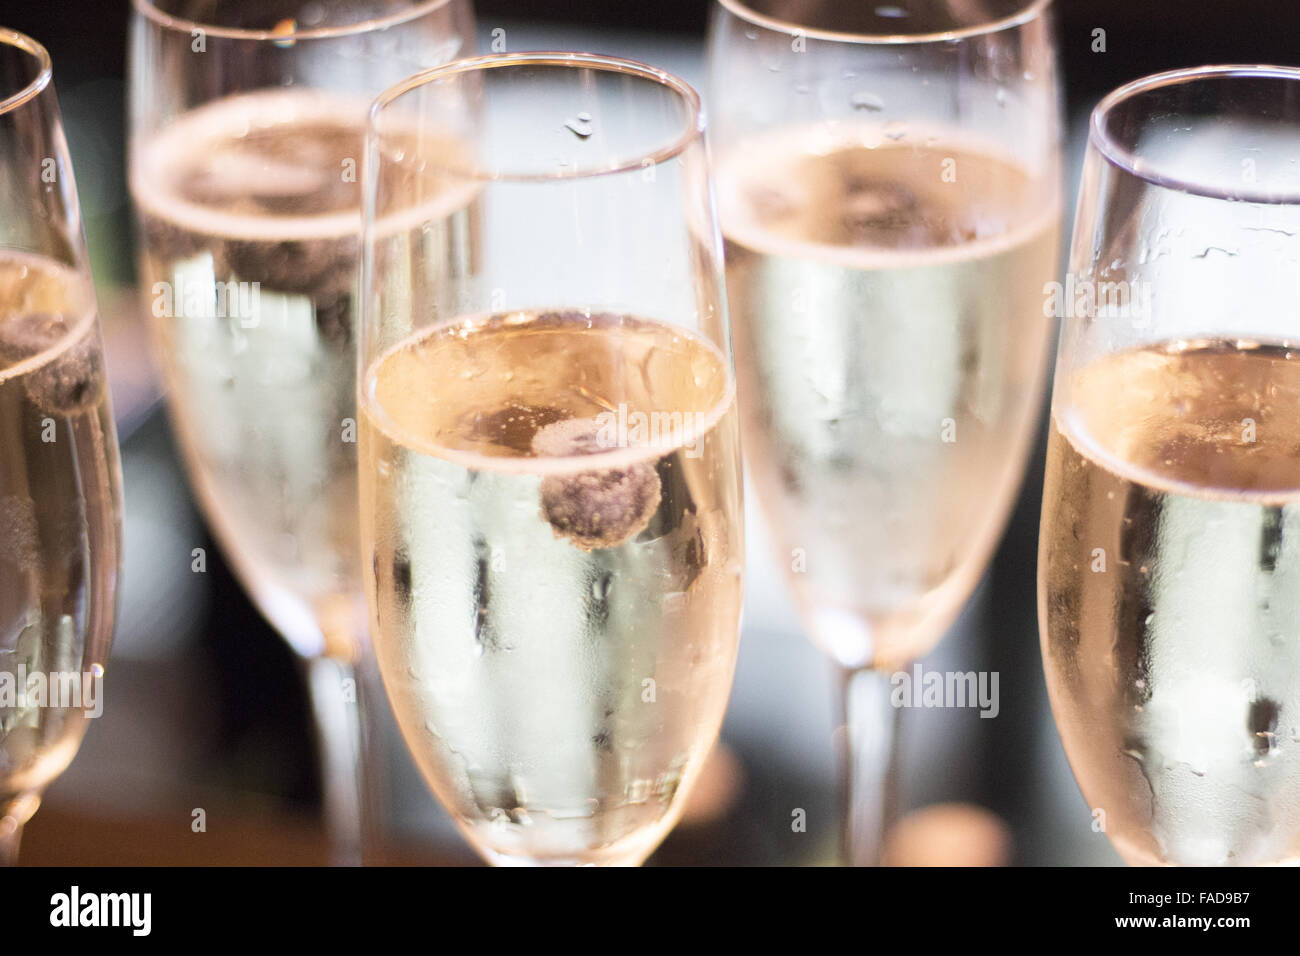 Champagne Sparkling White Wine Glasses In Restaurant Bar In Wedding Reception Party Photo